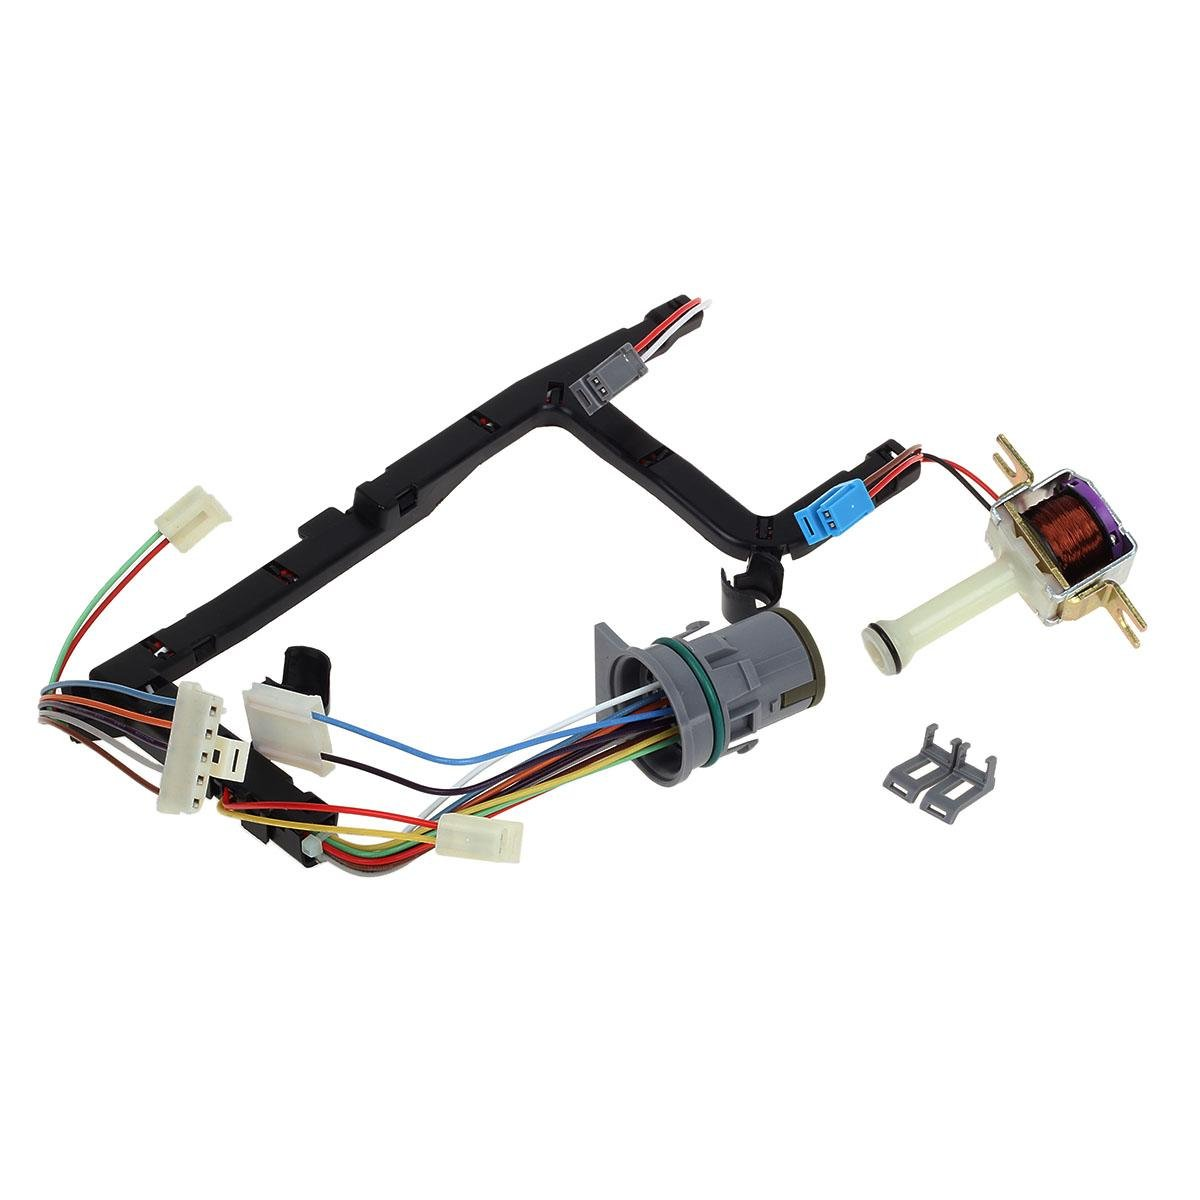 6118MGsPBLL._SL1200_ amazon com partsam 4l60e 4l65e internal wire harness w tcc 4l60e wiring harness at readyjetset.co